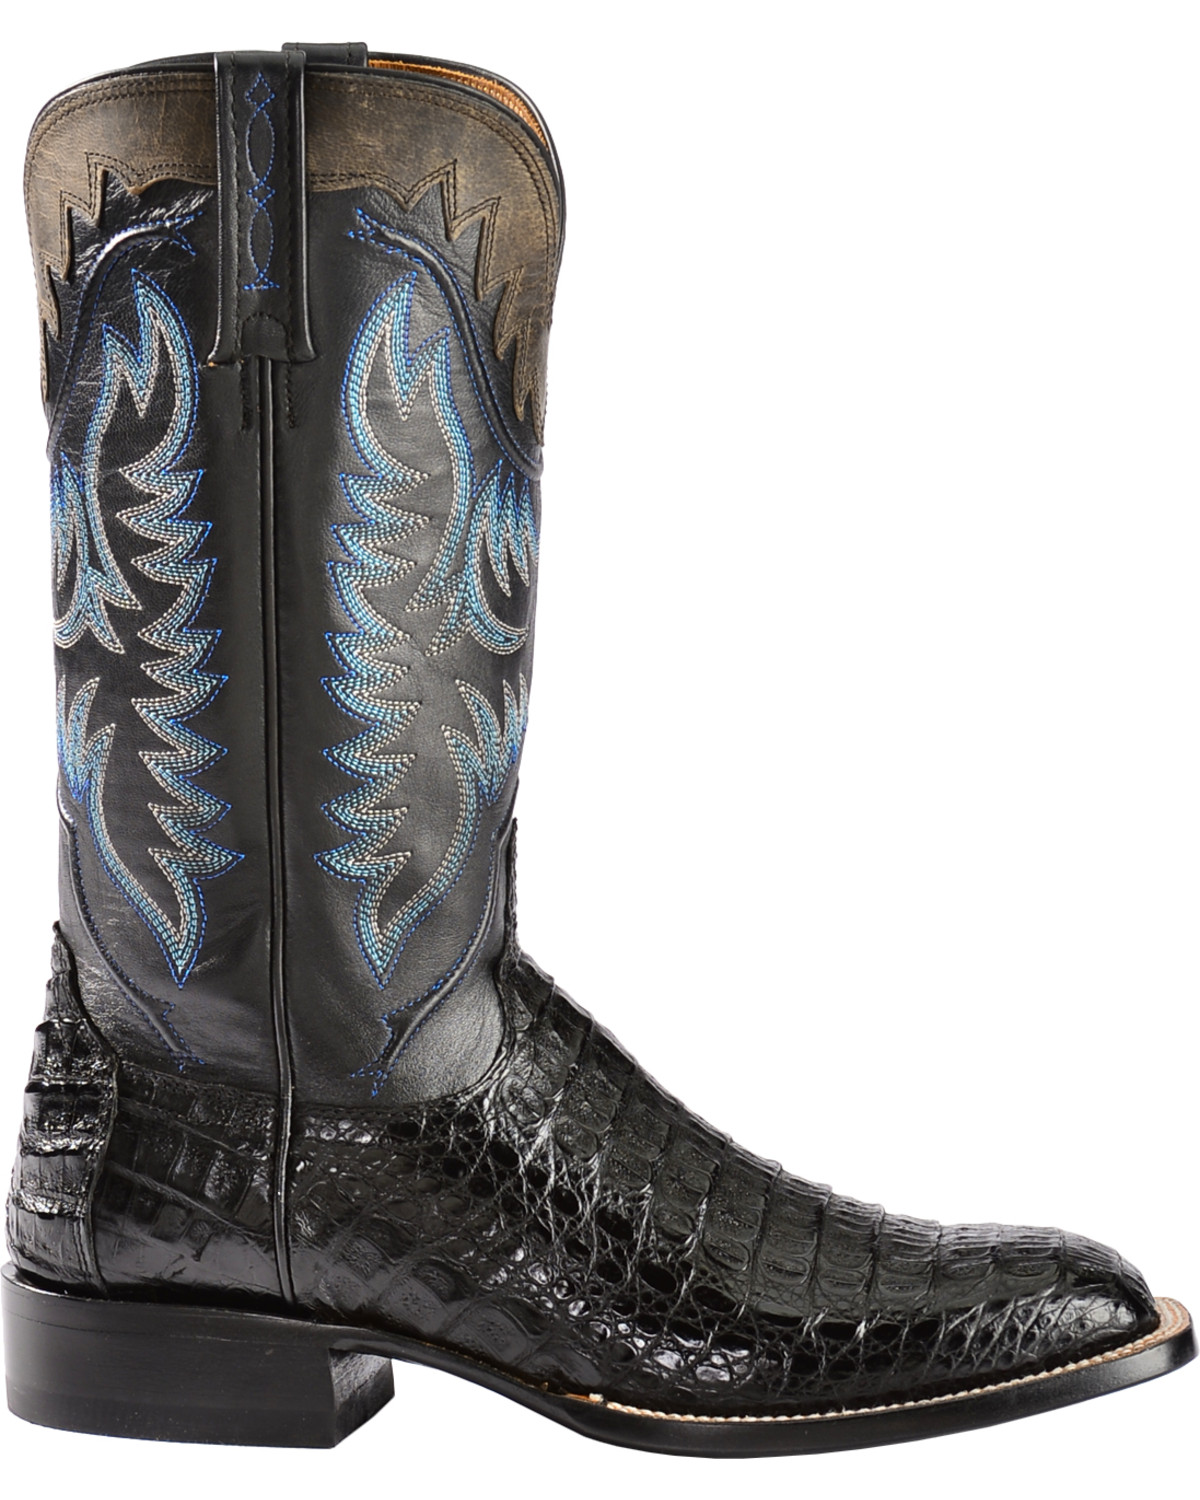 Wolverine Men's W Buccaneer Boot As another boot recommended for flat feet are the Wolverine Men's Buccaneer Boots which are constructed with multi-shock absorbing compression pads molded directly in the outsole providing thick, cushioning comfort with every step.